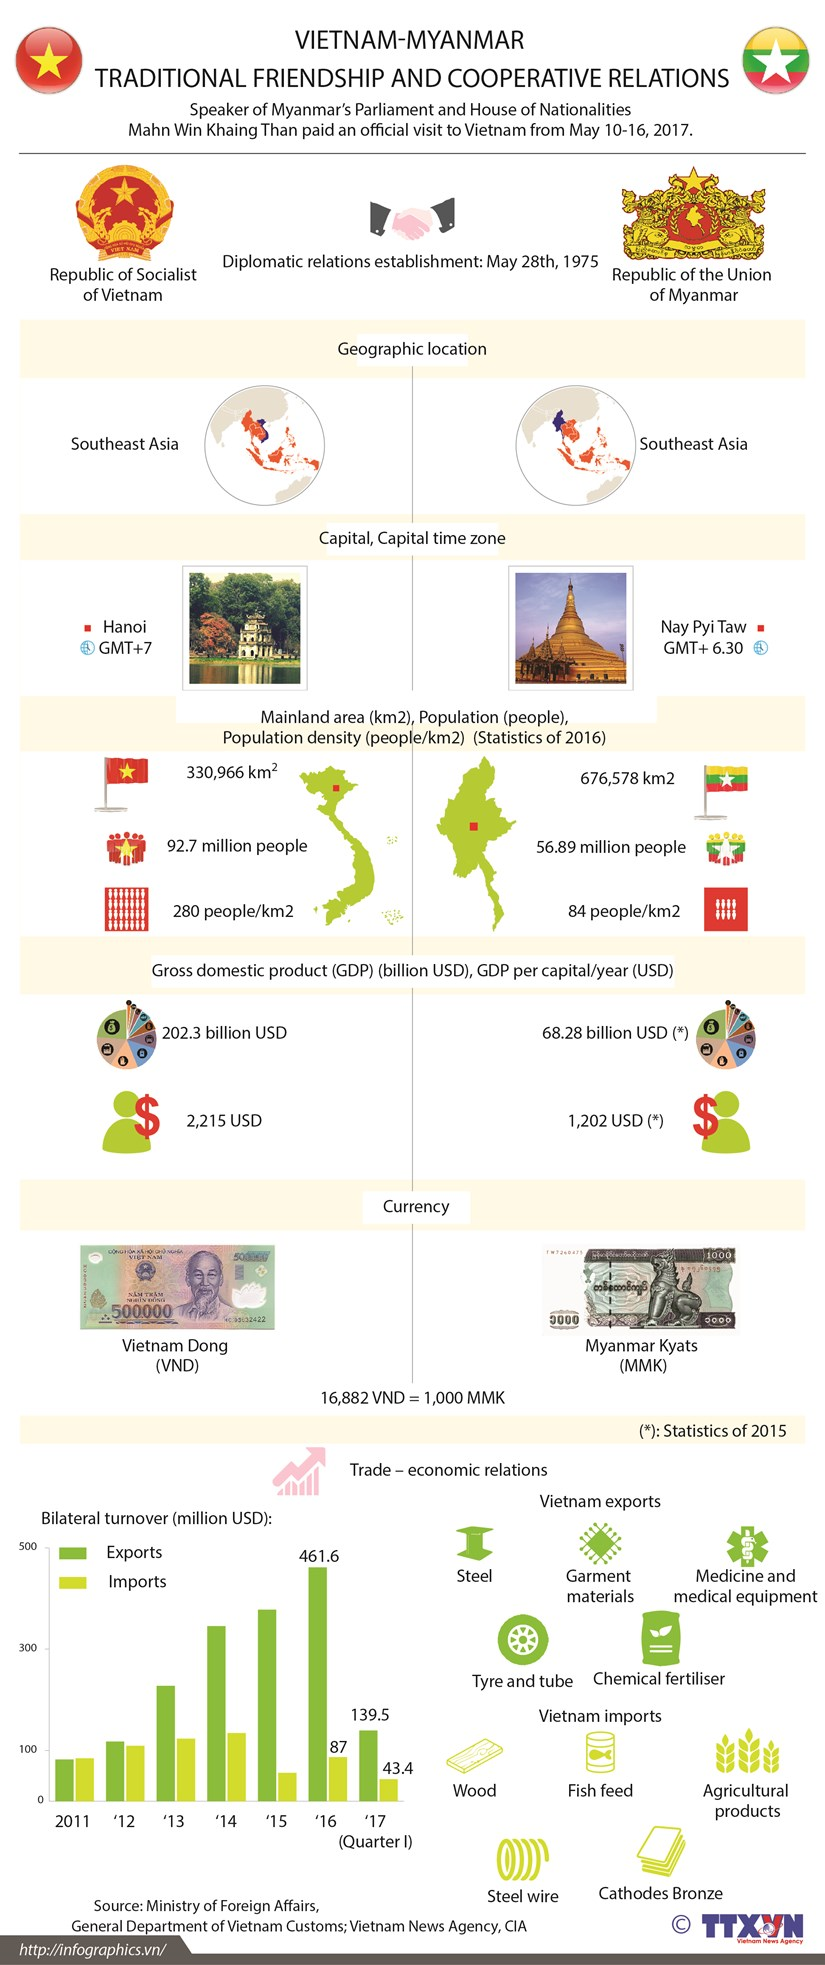 Vietnam-Myanmar traditional friendship and cooperative relations hinh anh 1